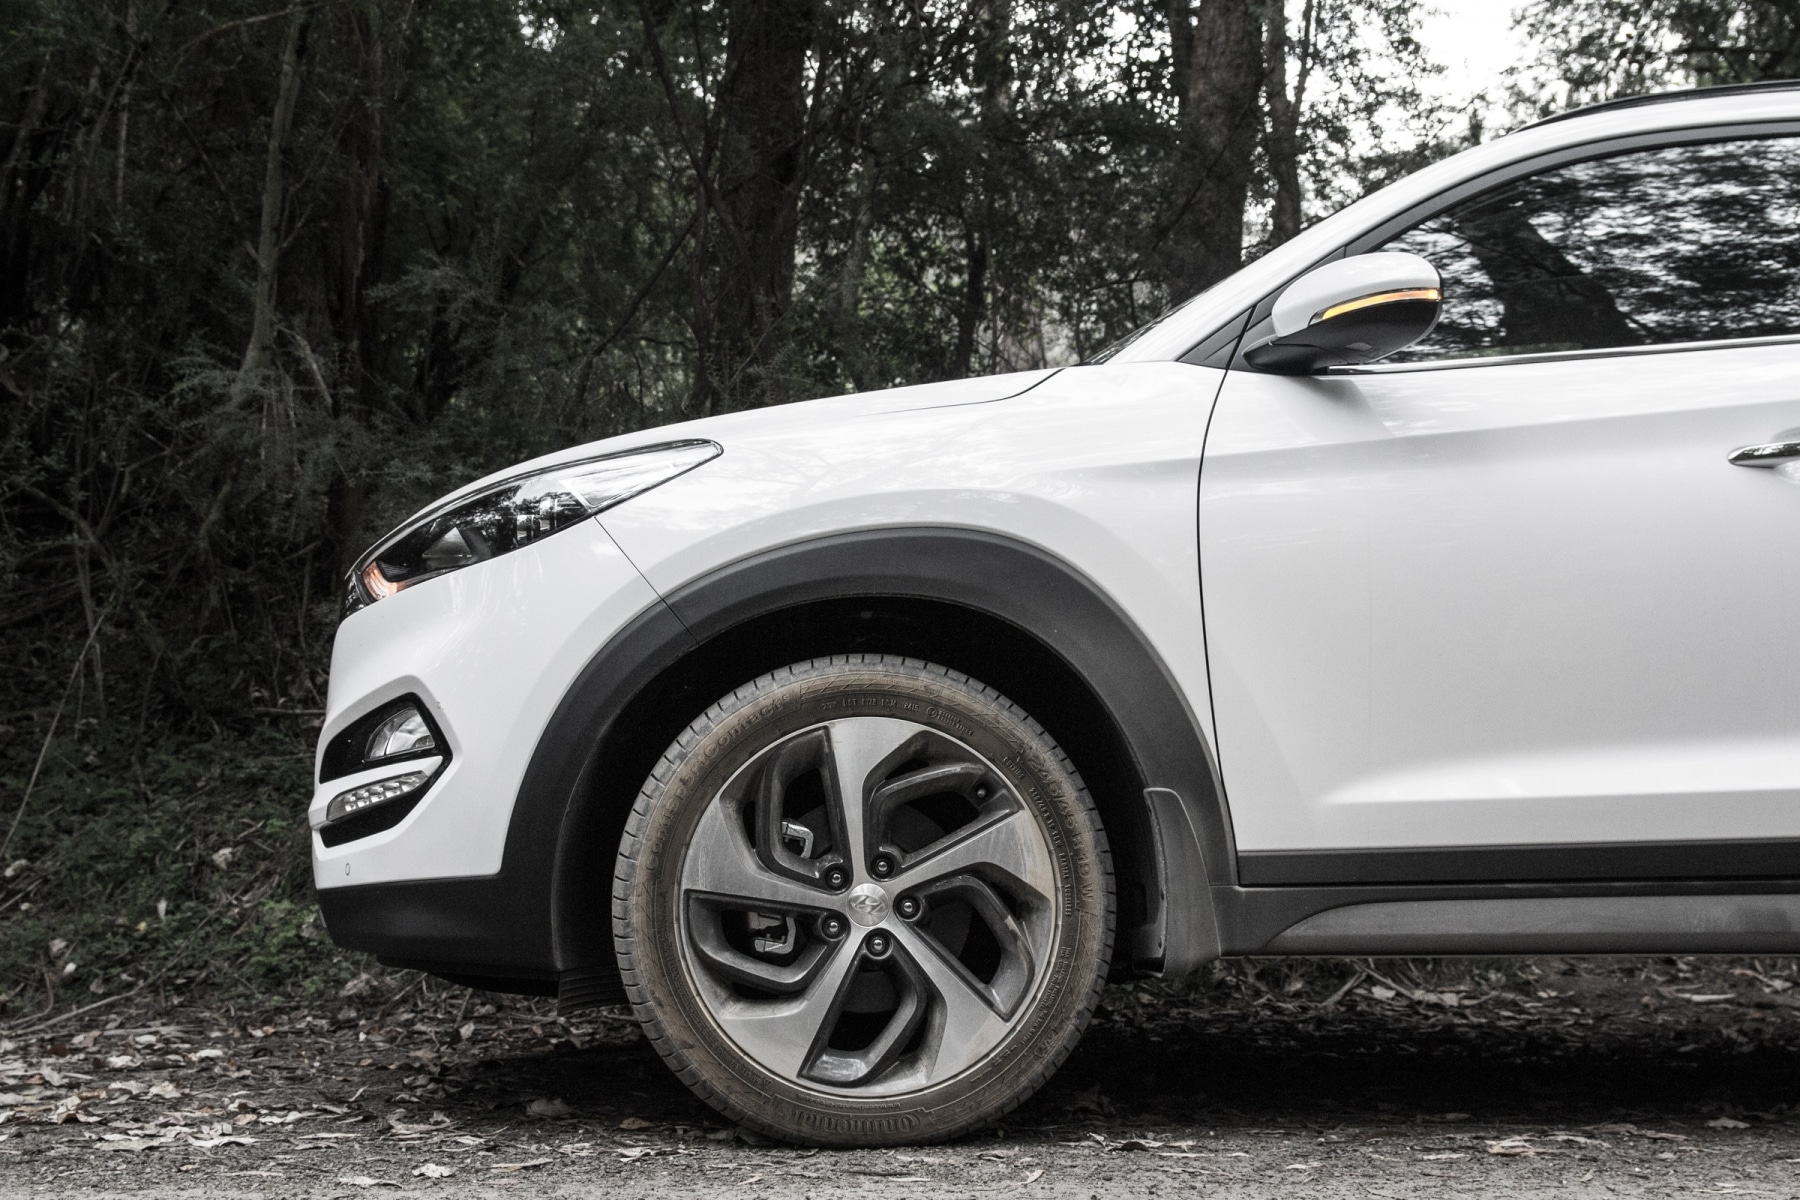 wheel of hyundai tucson suv